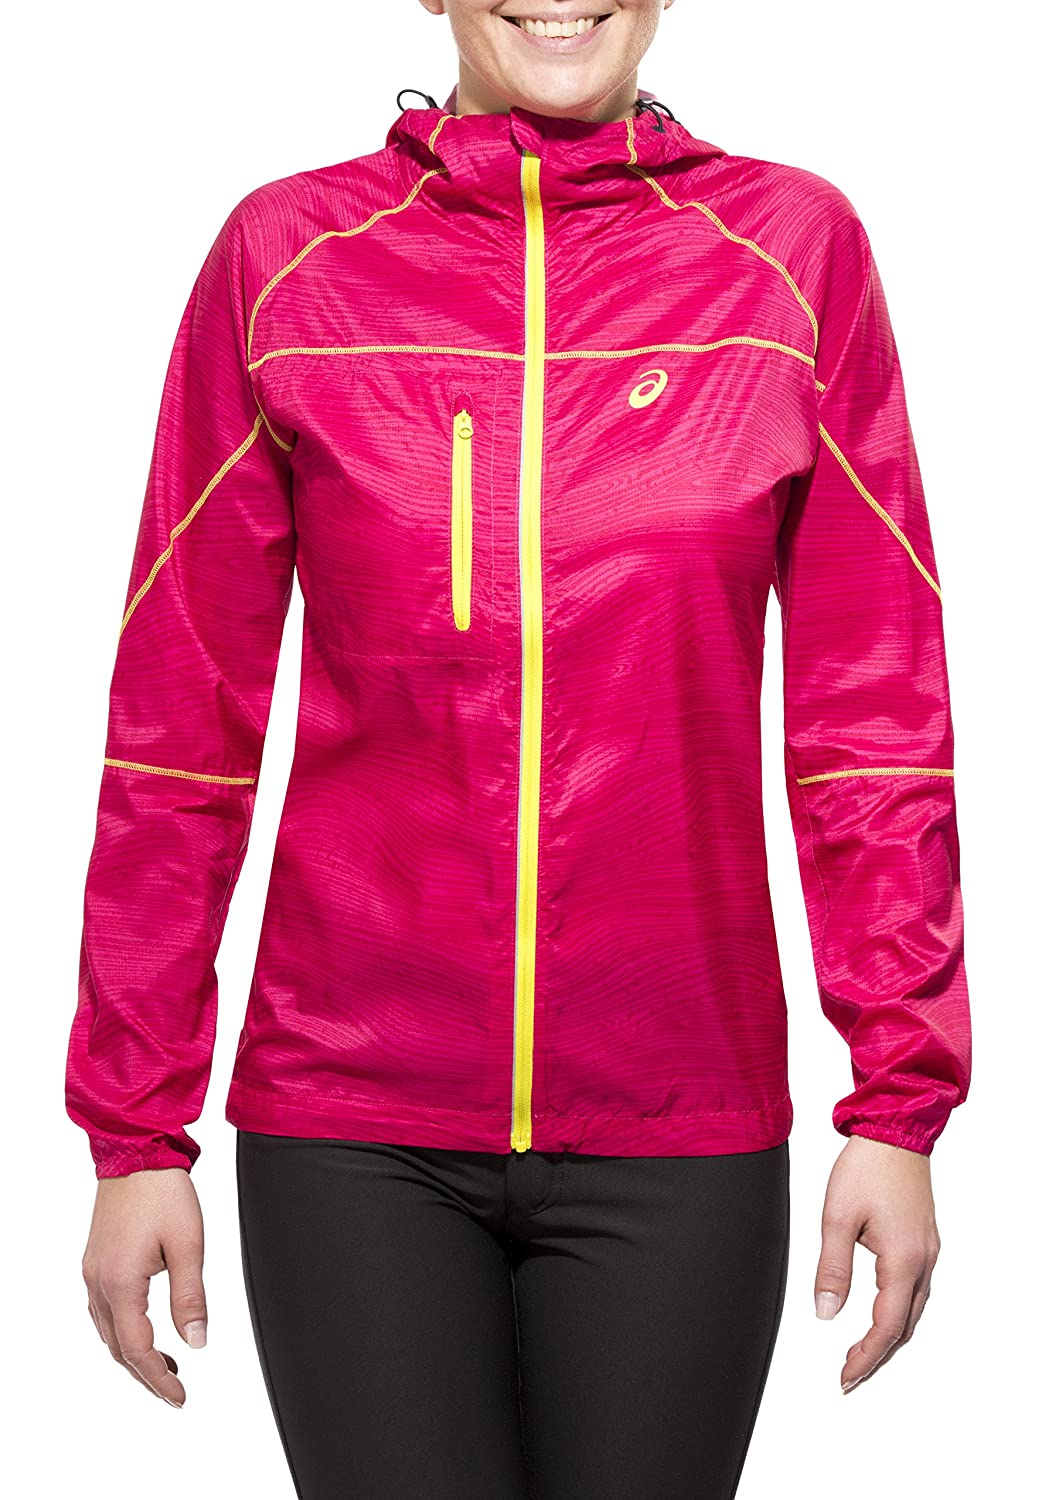 Asics FUJI PACKABLE Women's Running Jacket